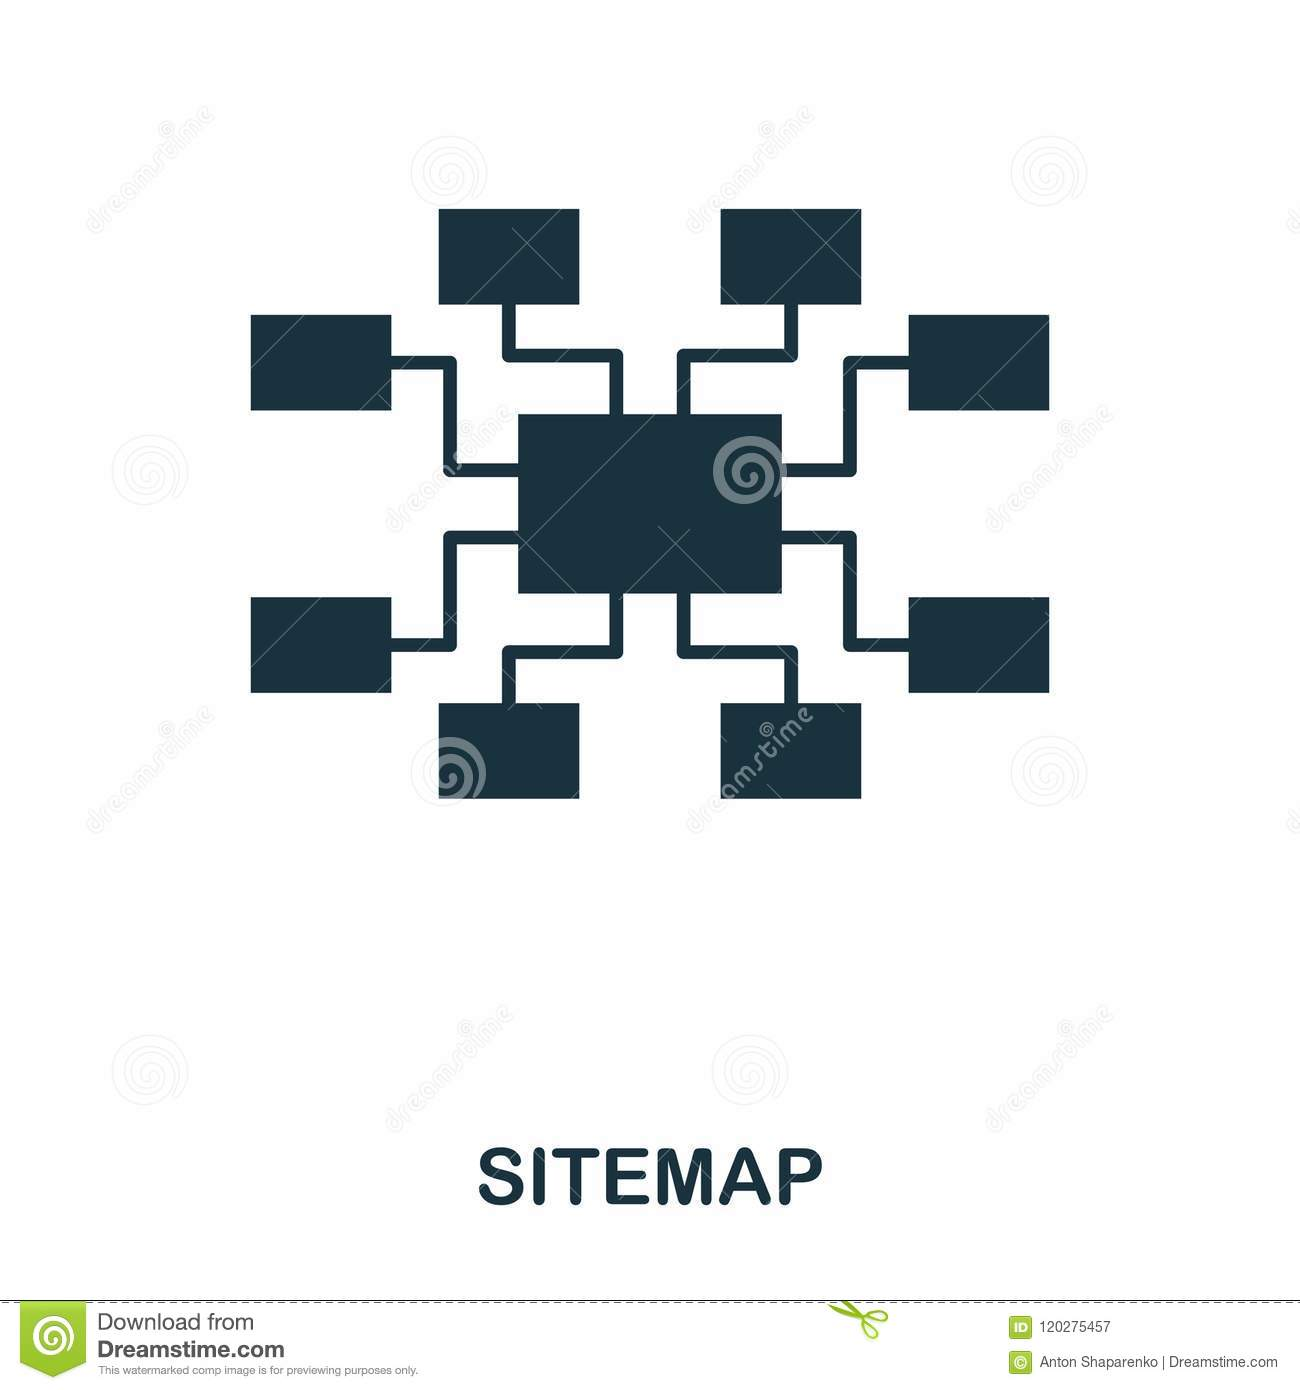 Sitemap icon. Line style icon design. UI. Illustration of sitemap icon. Pictogram isolated on white. Ready to use in web